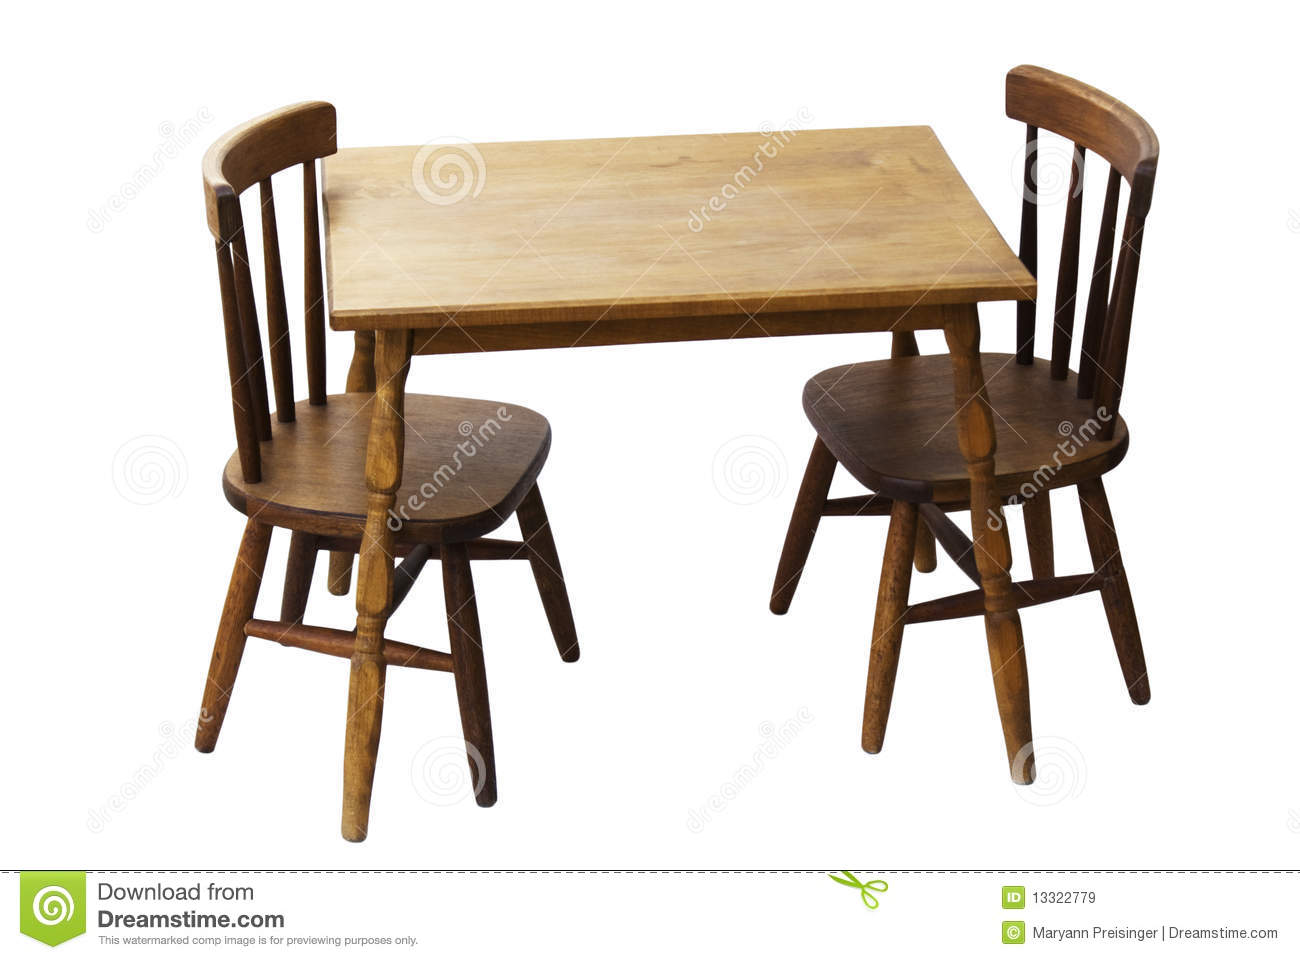 Children s child wood table and chairs isolated royalty free stock